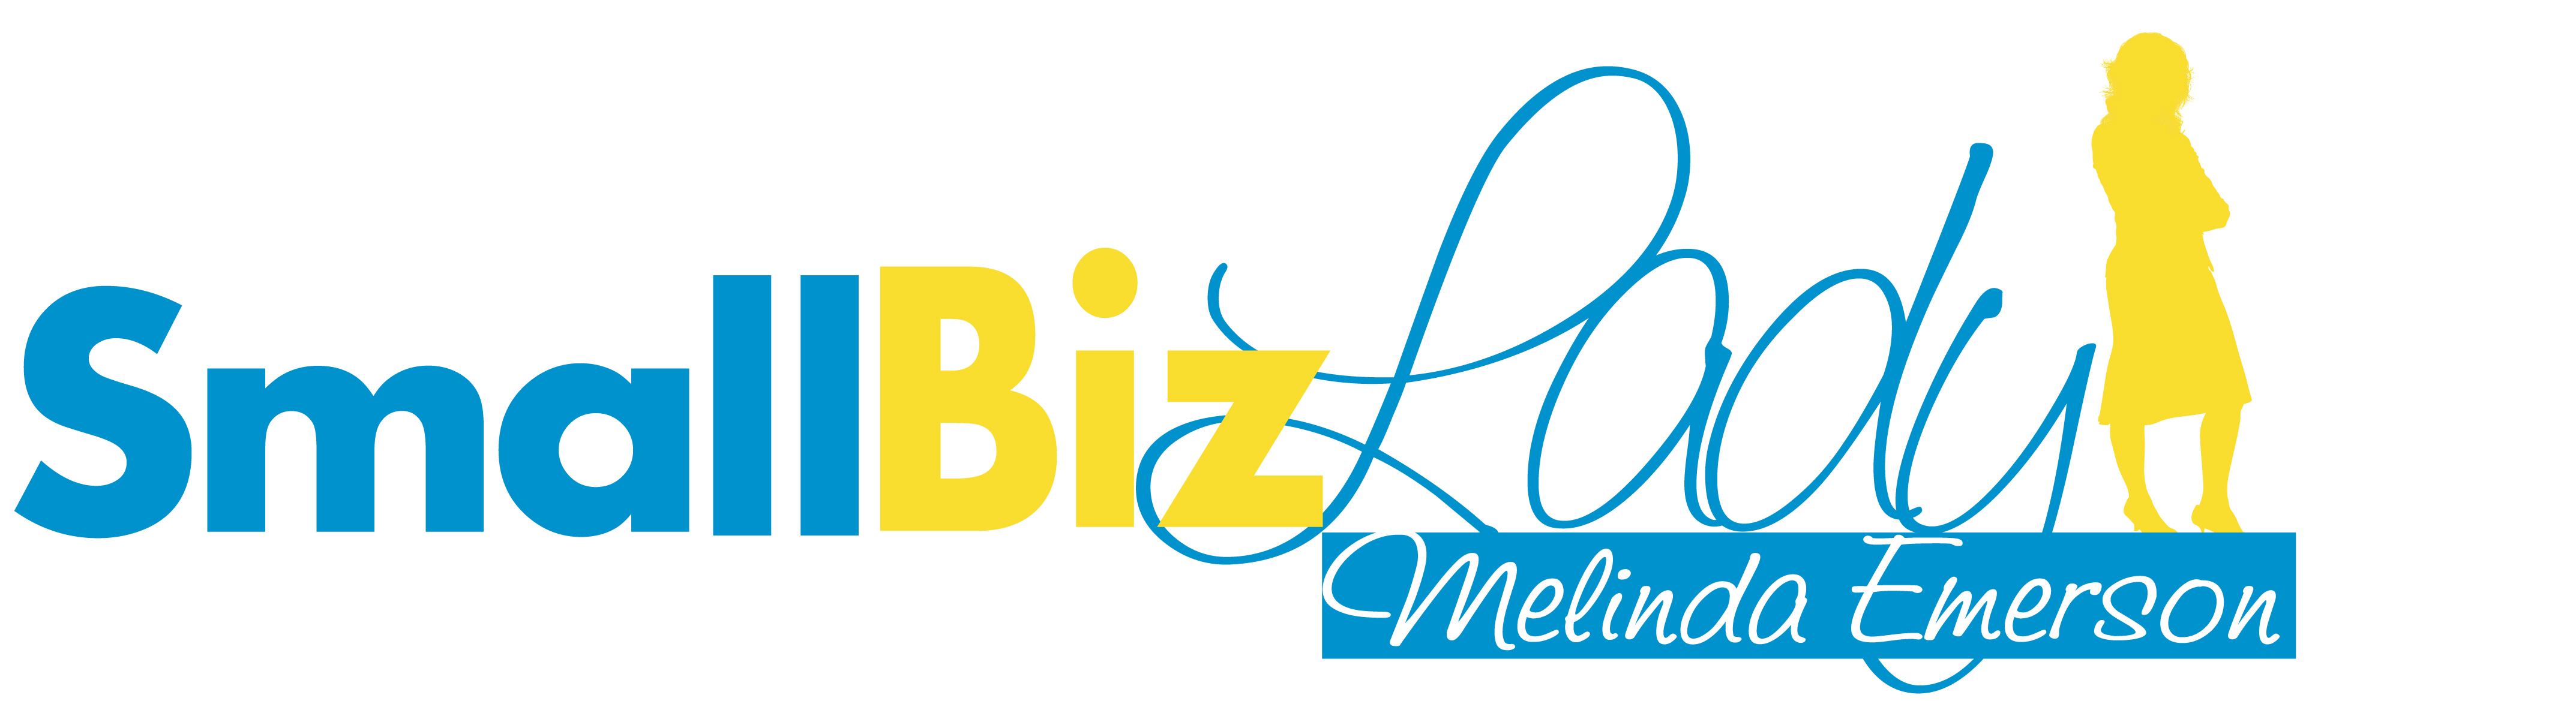 Logo for Melinda Emerson's Brand, SmallBizLady